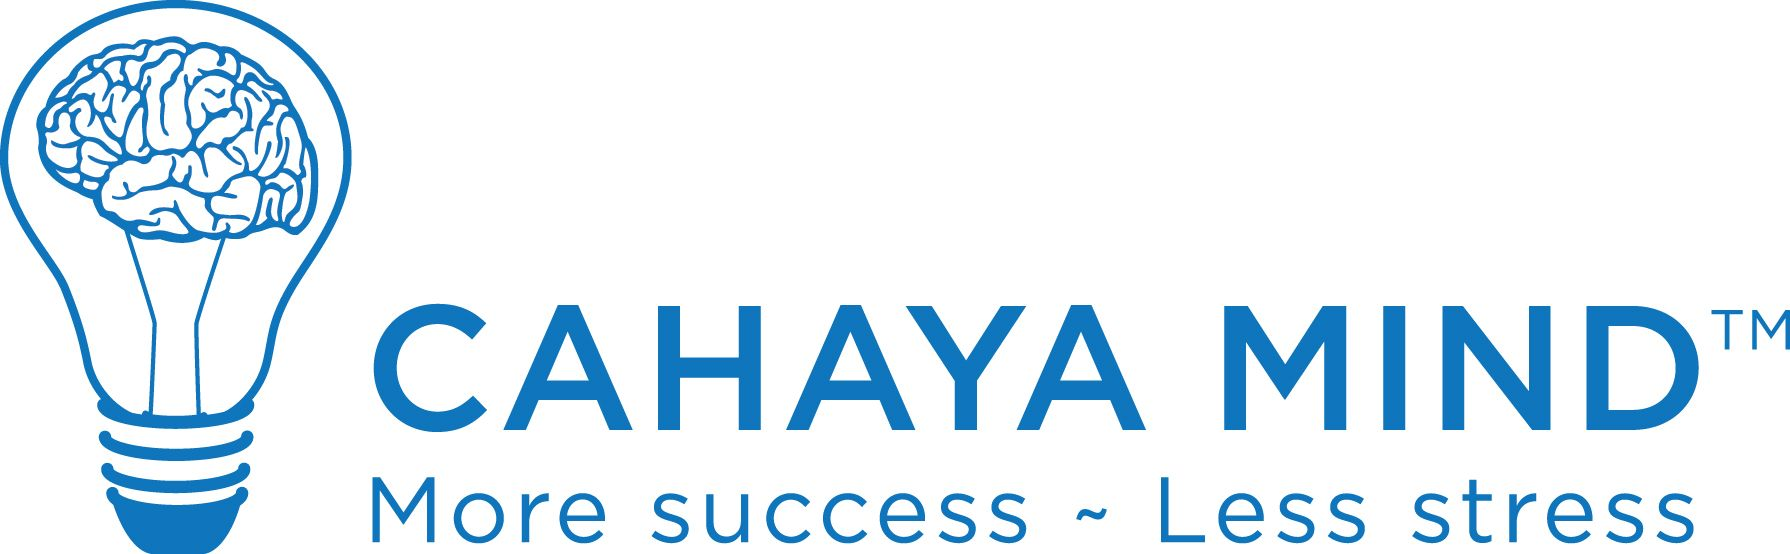 Cahaya in Malay means 'ray of light' or bright luminescence.  So the rough translation is Bright Mind.